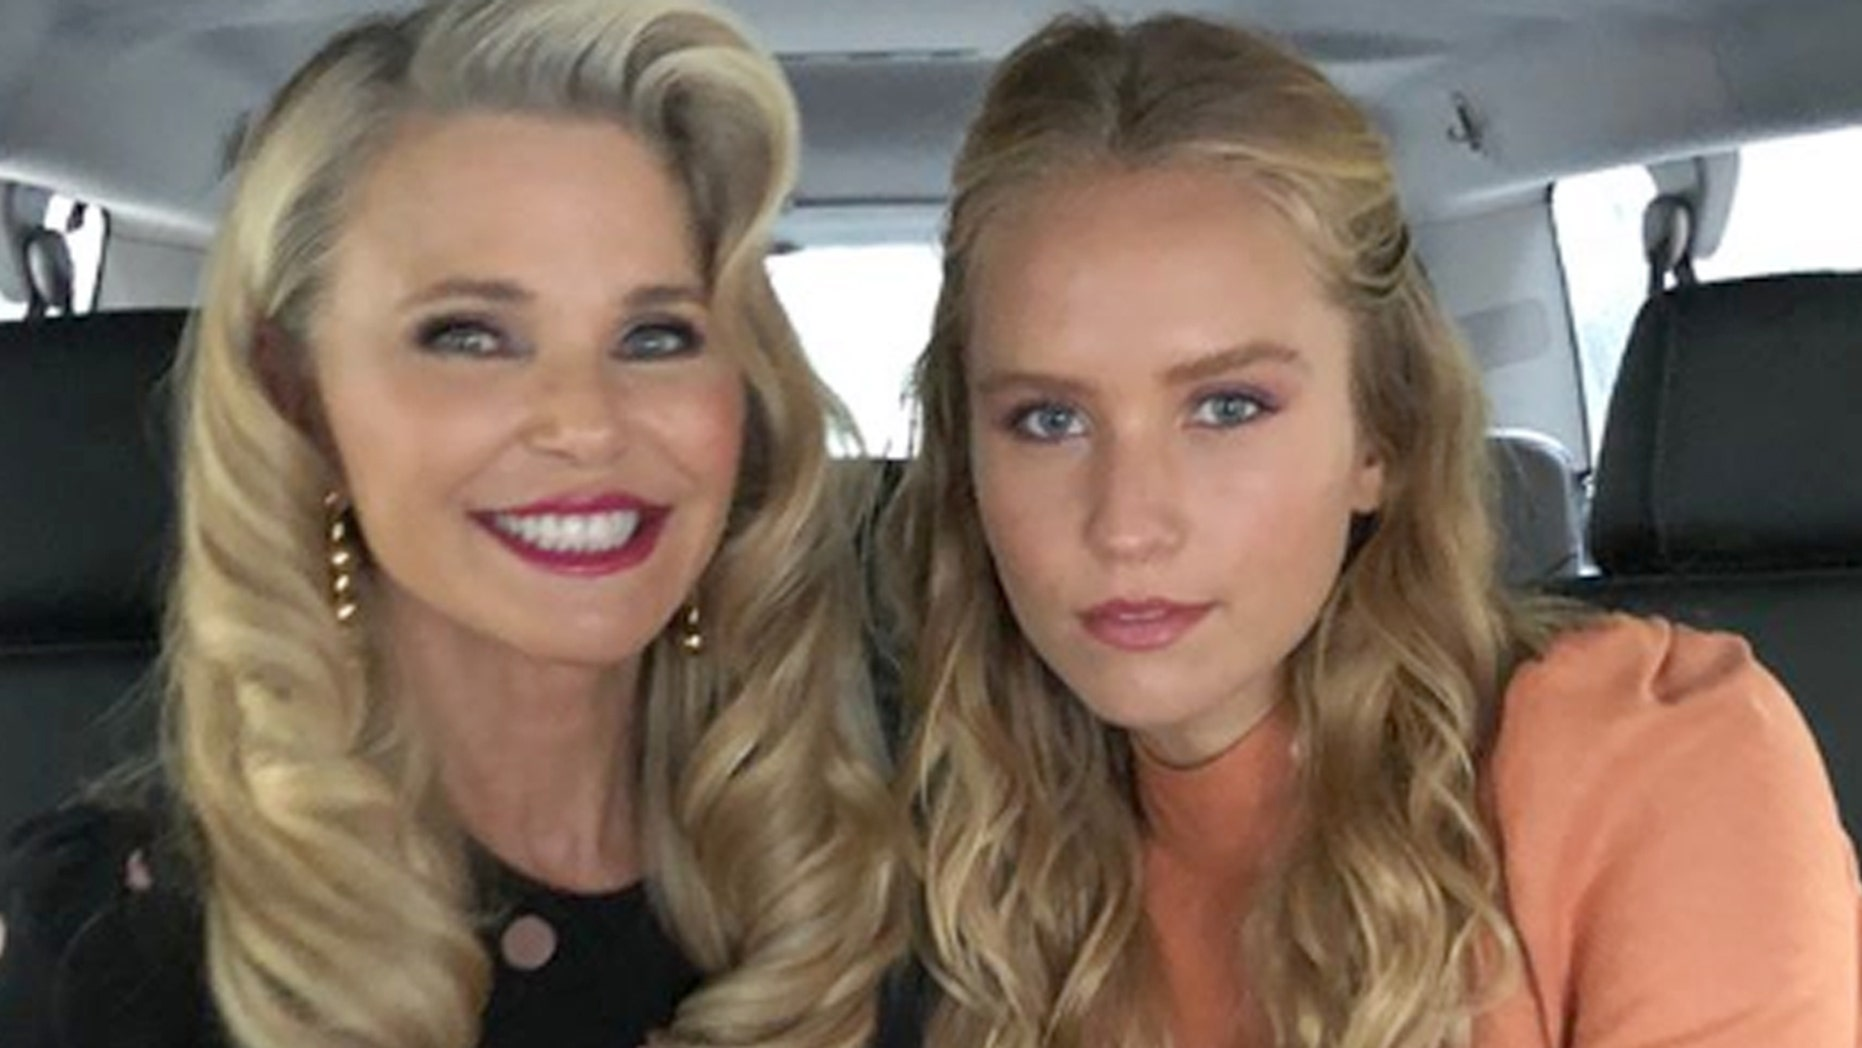 Supermodel Christie Brinkley attends New York Fashion Week shows with her daughter, Sailor.